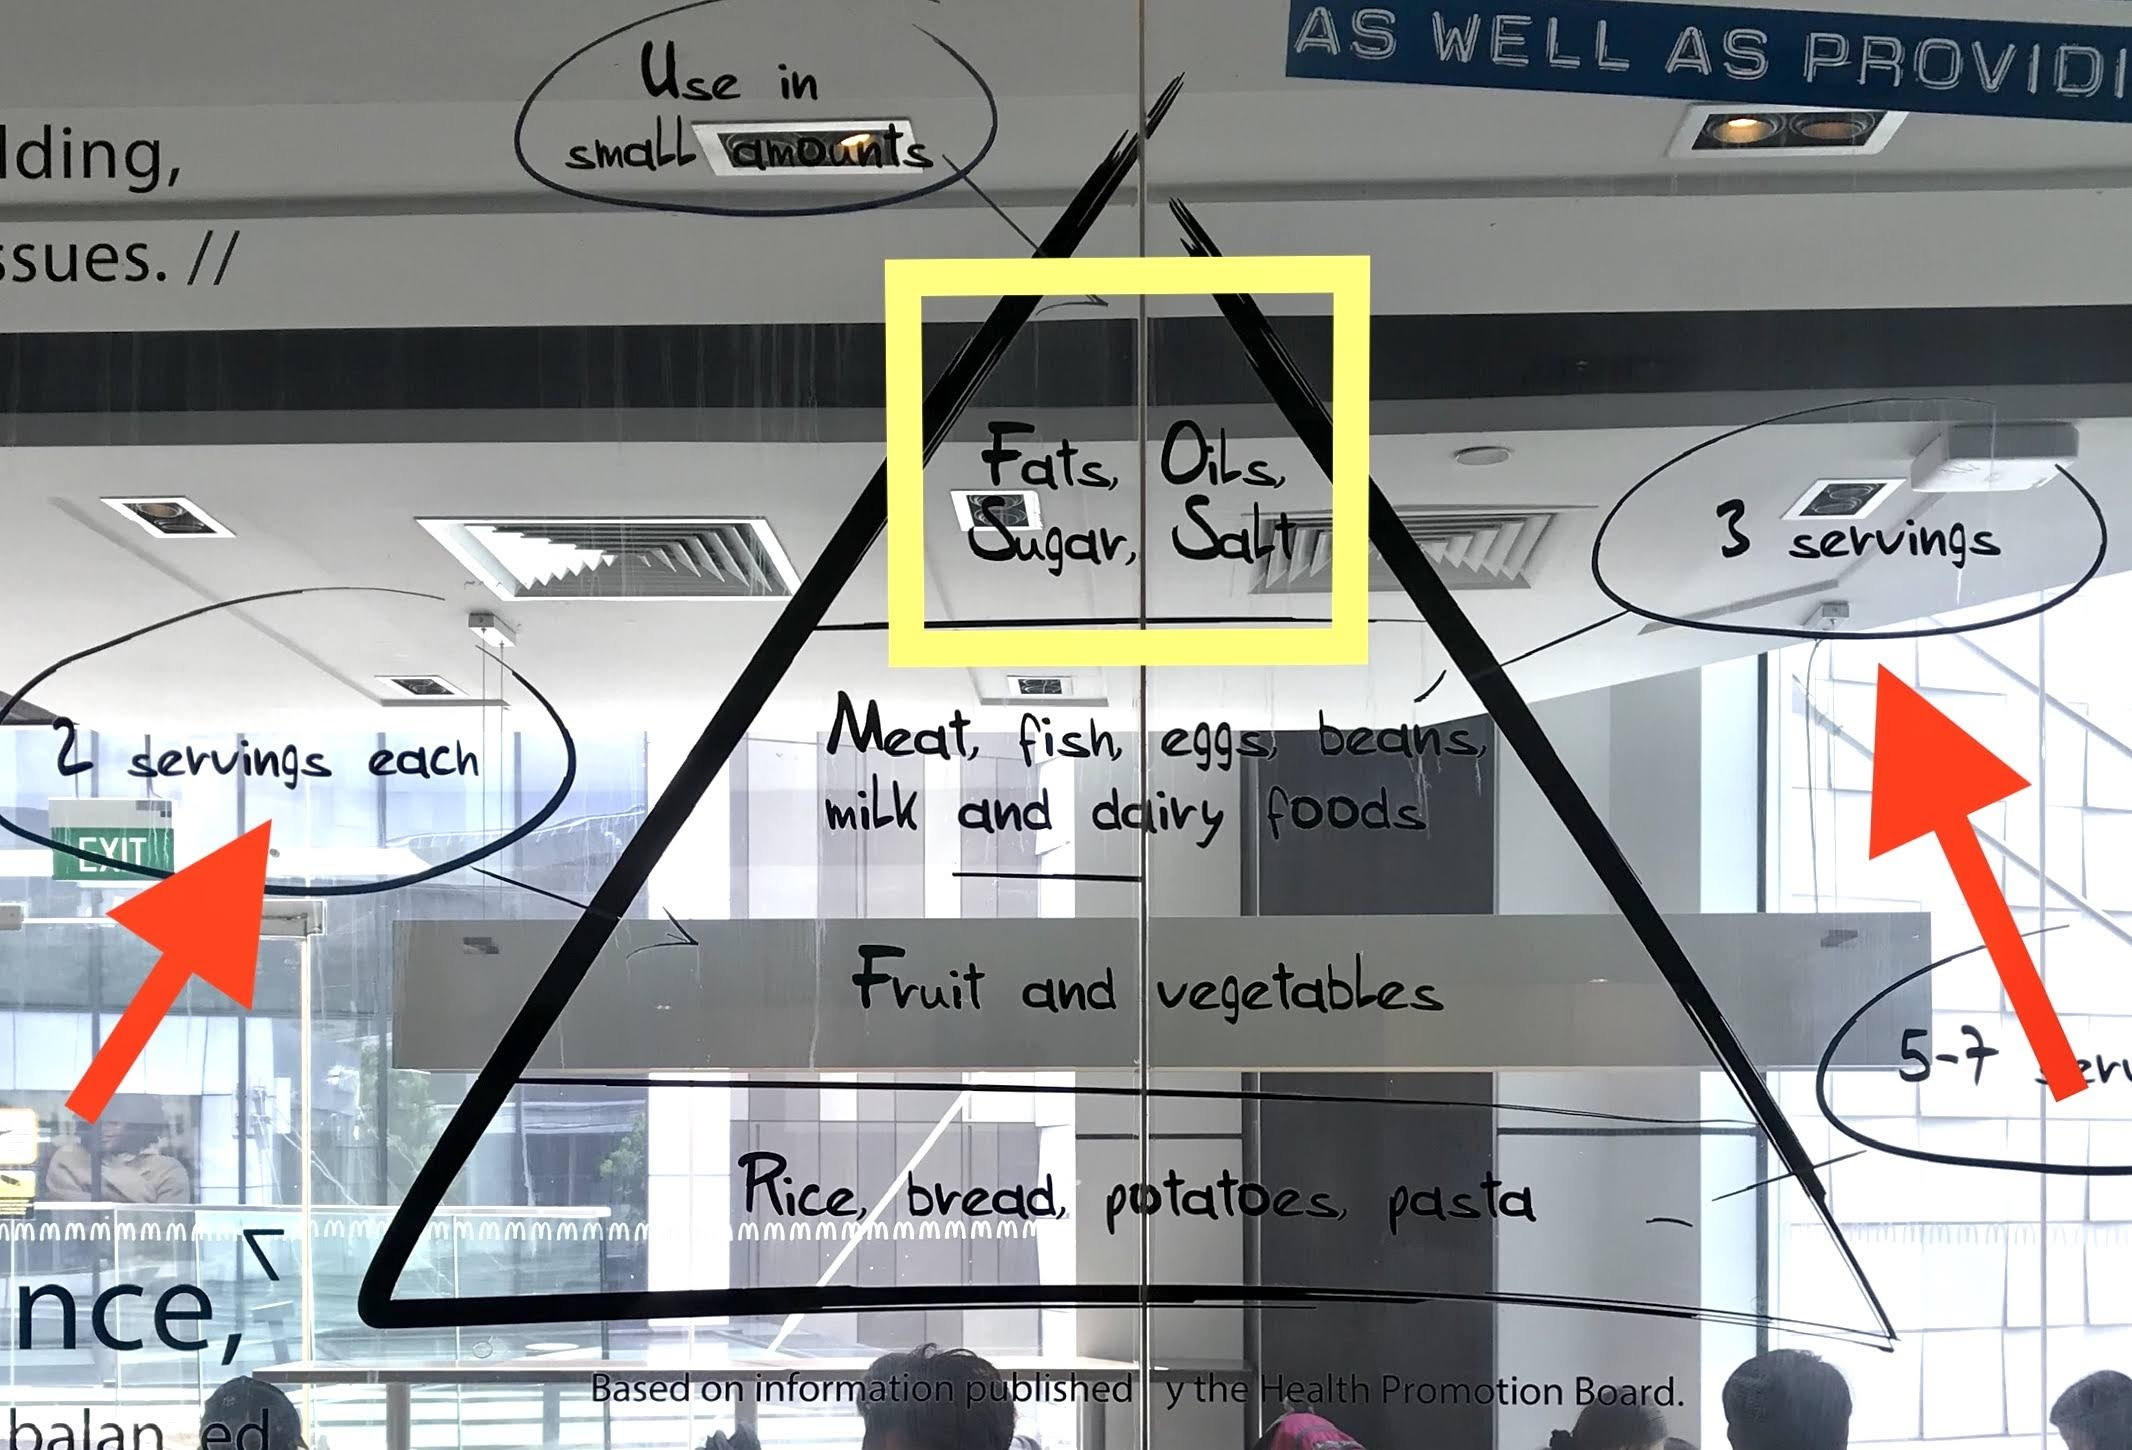 Misrepresented and outdated food pyramid at a local McDonalds.